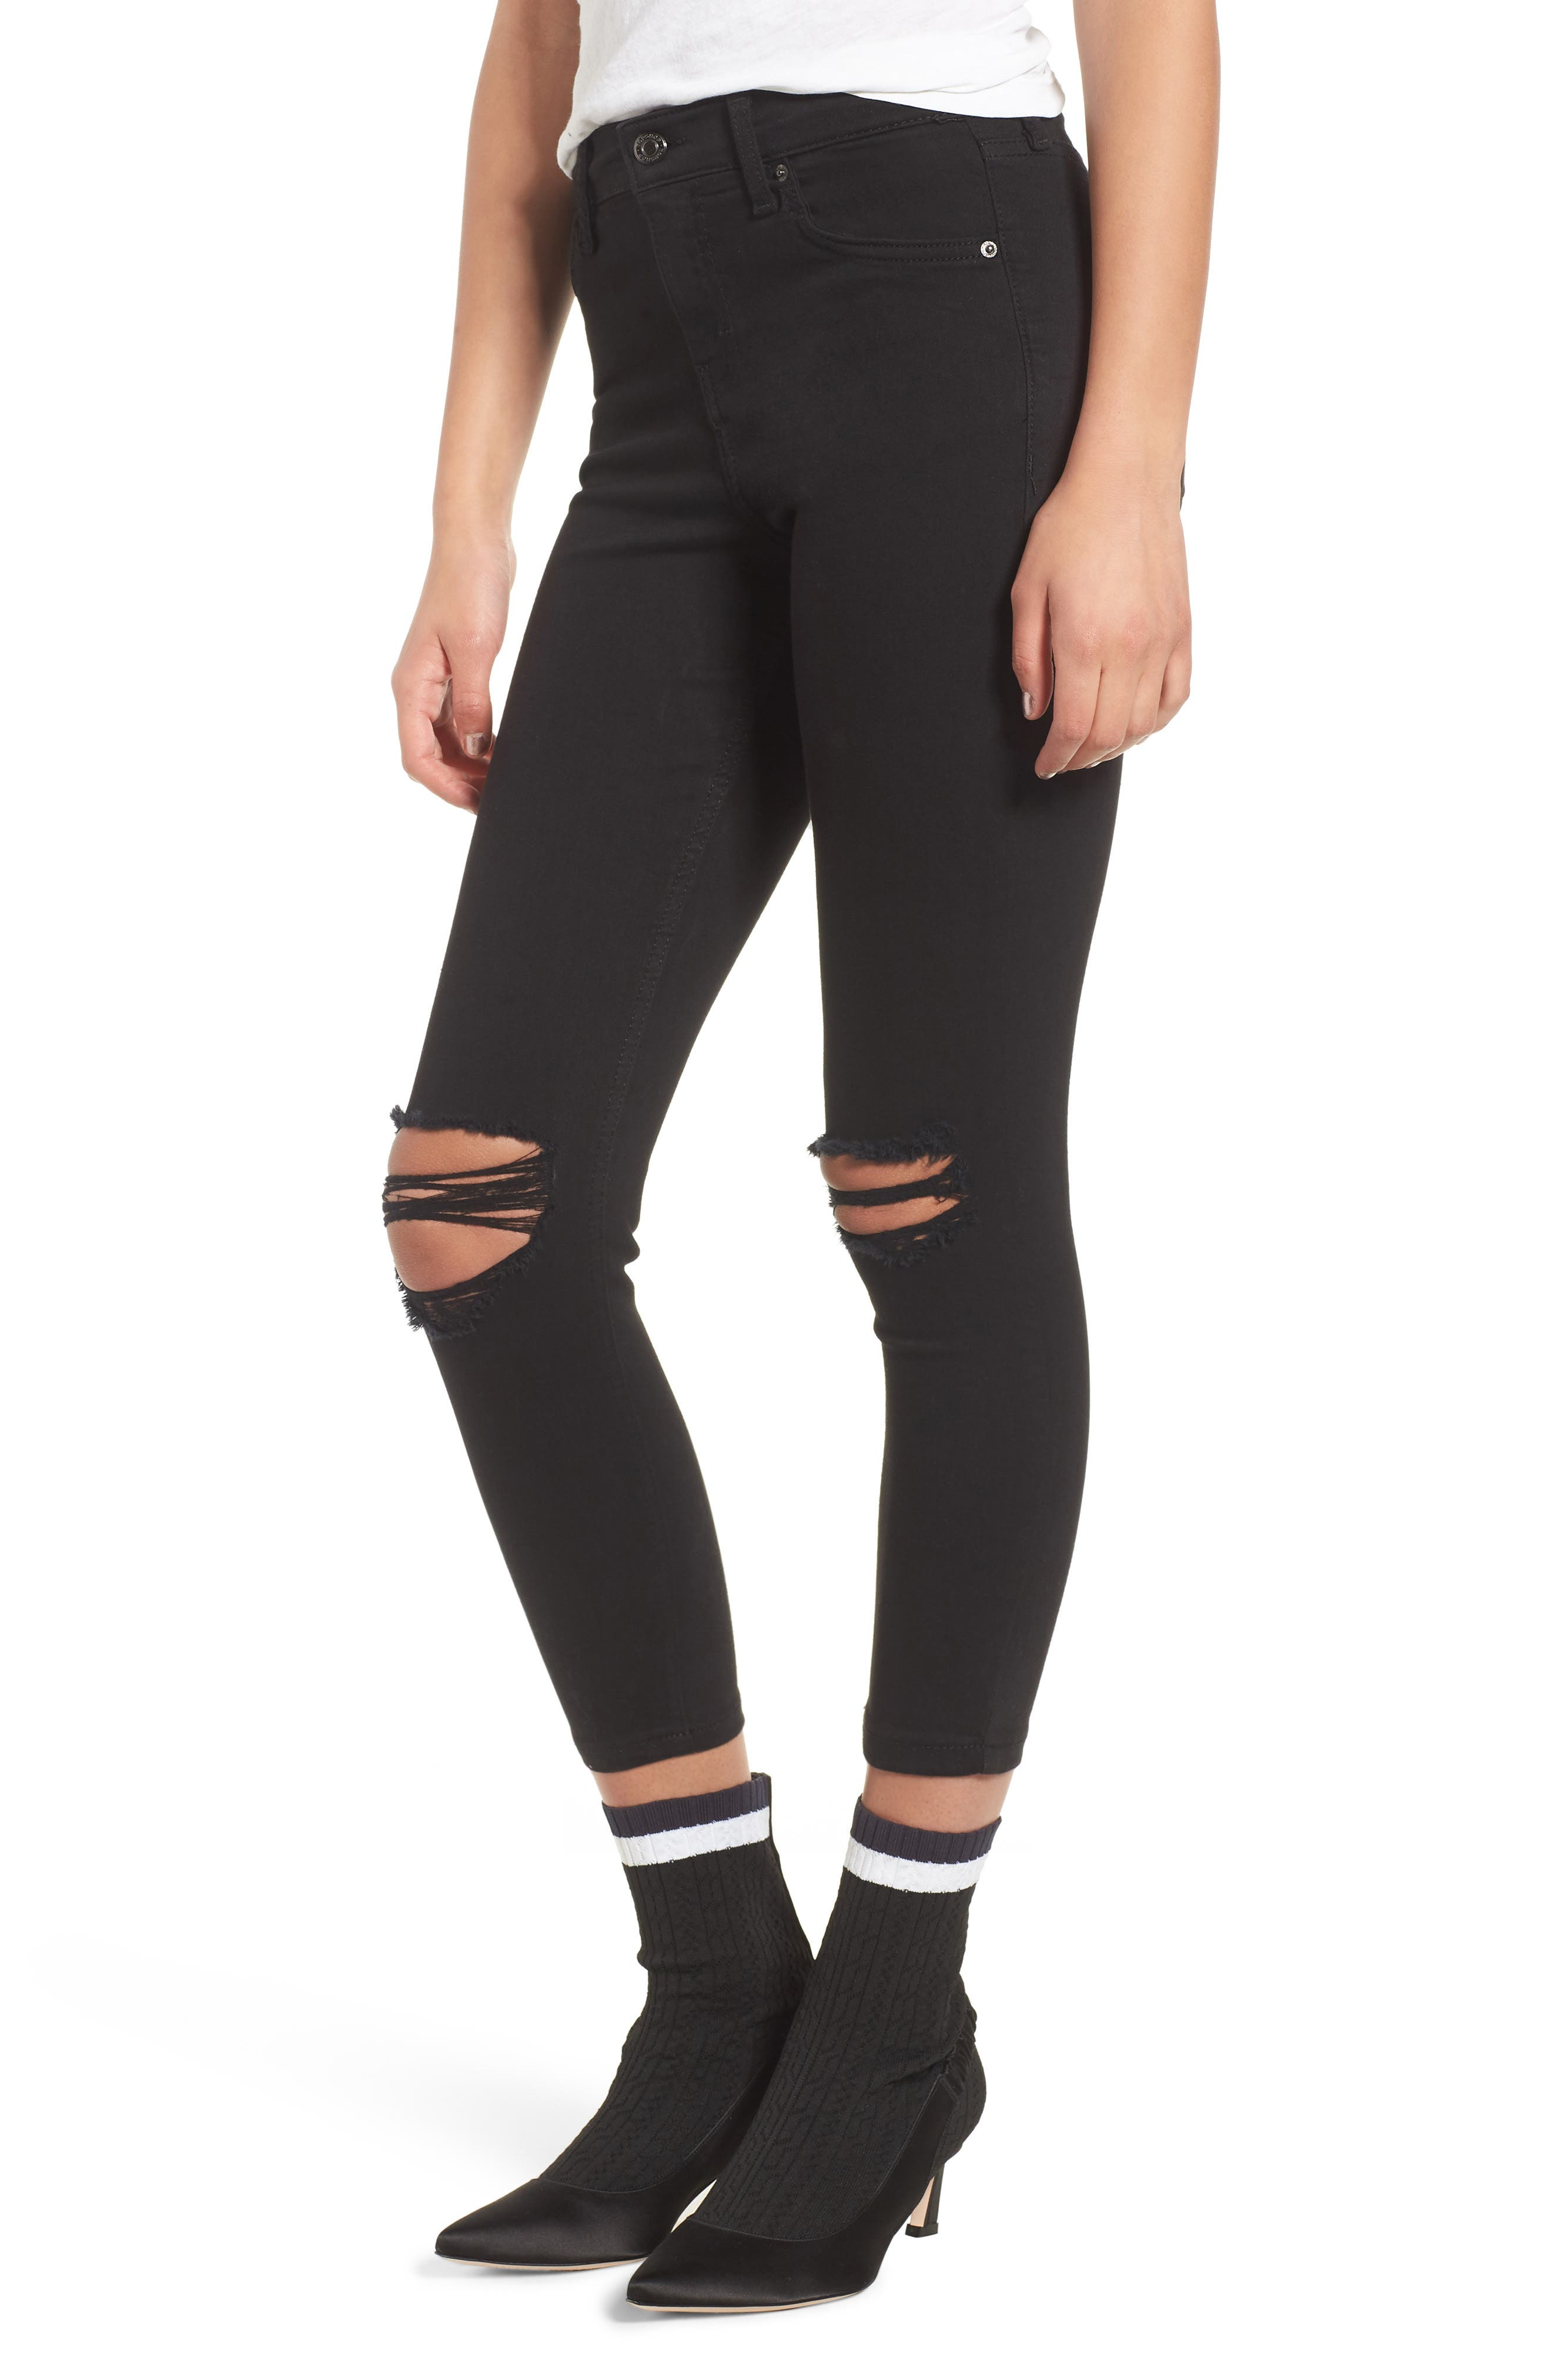 Jamie Ripped Jeans,                             Main thumbnail 1, color,                             Black